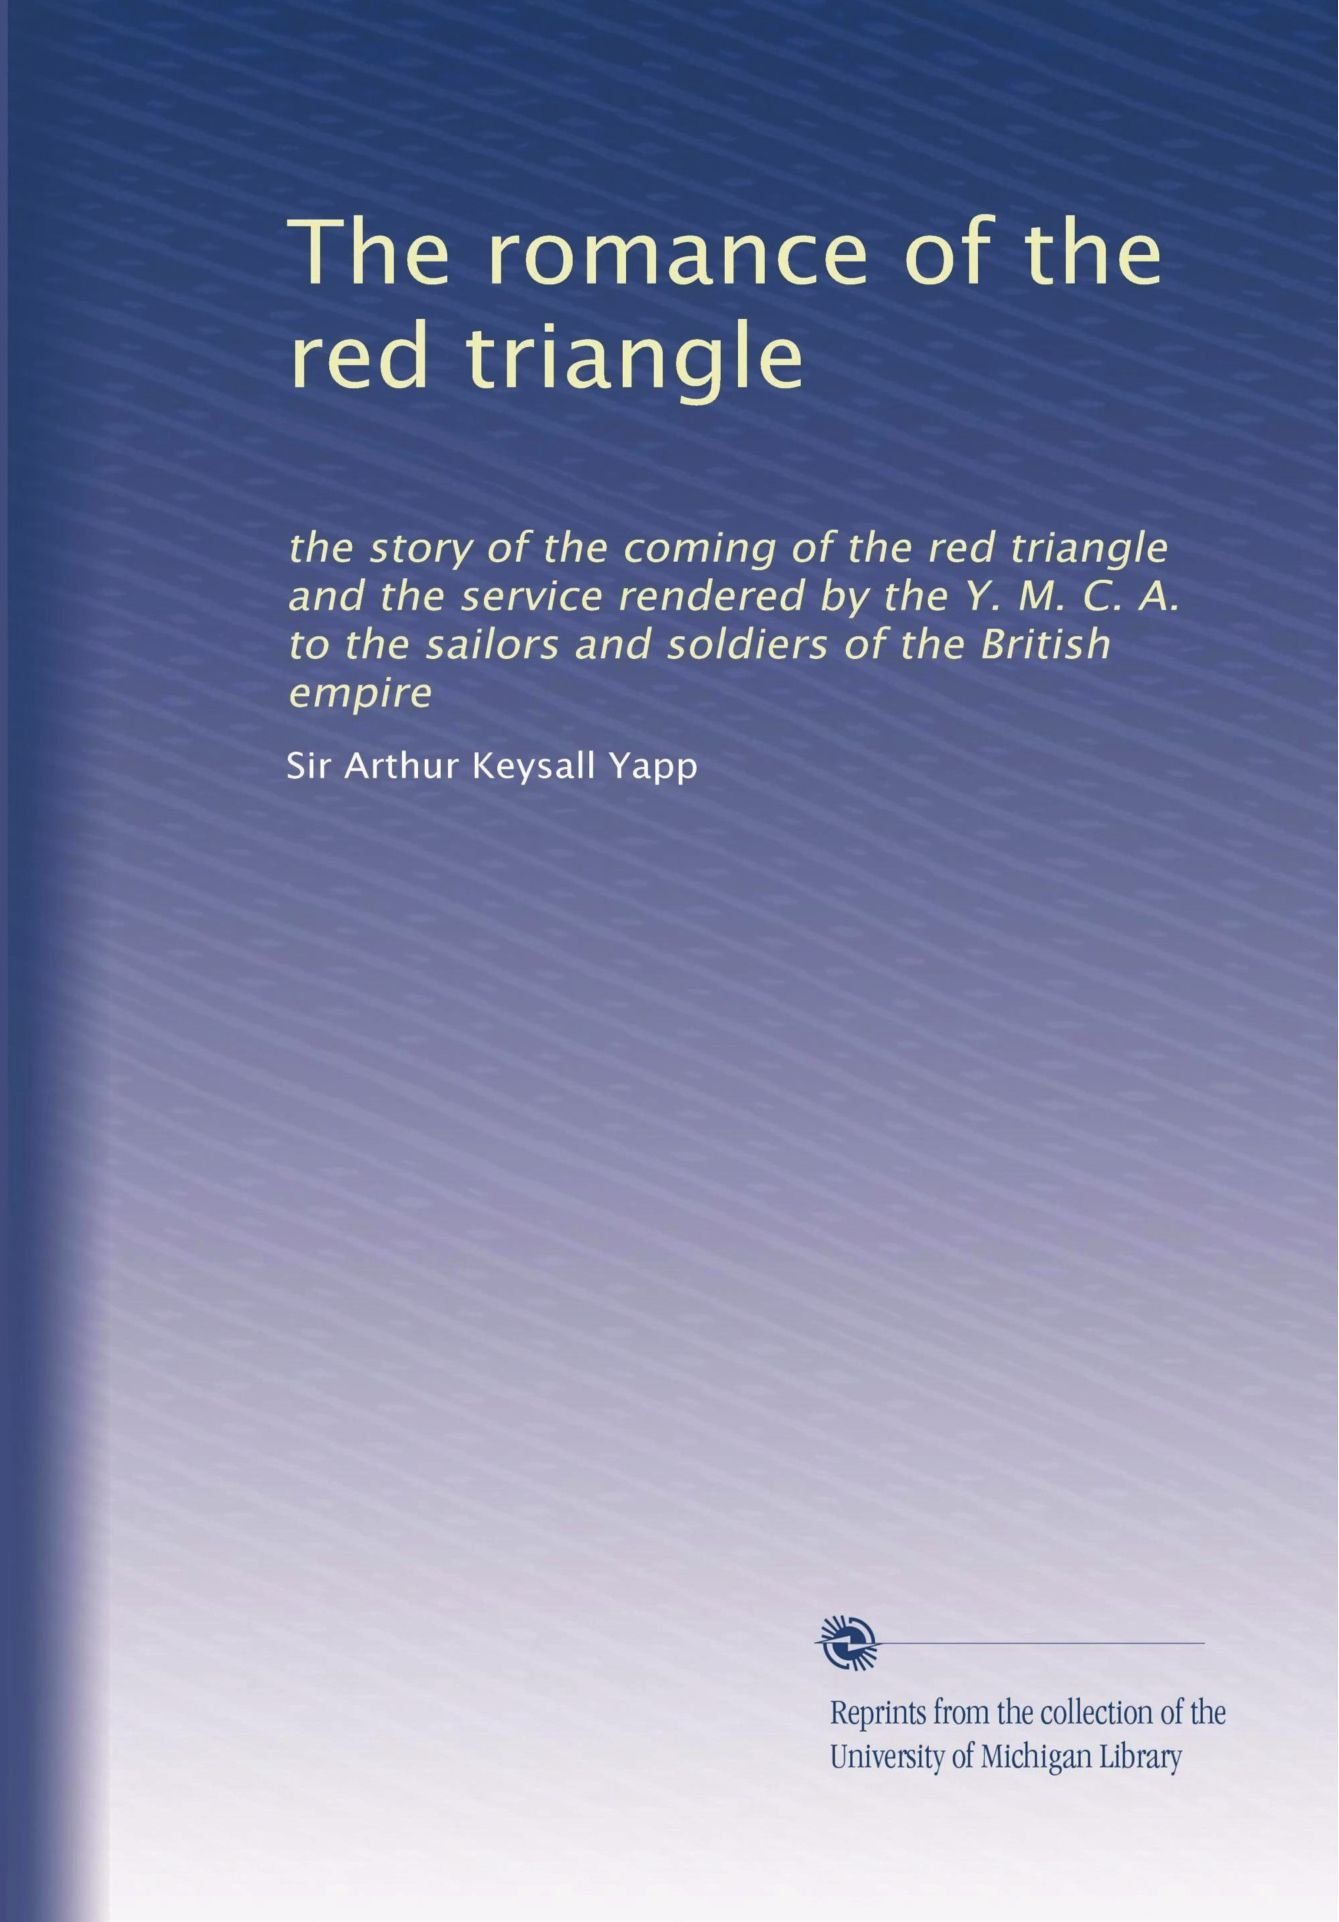 The romance of the red triangle: the story of the coming of the red triangle and the service rendered by the Y. M. C. A. to the sailors and soldiers of the British empire ebook